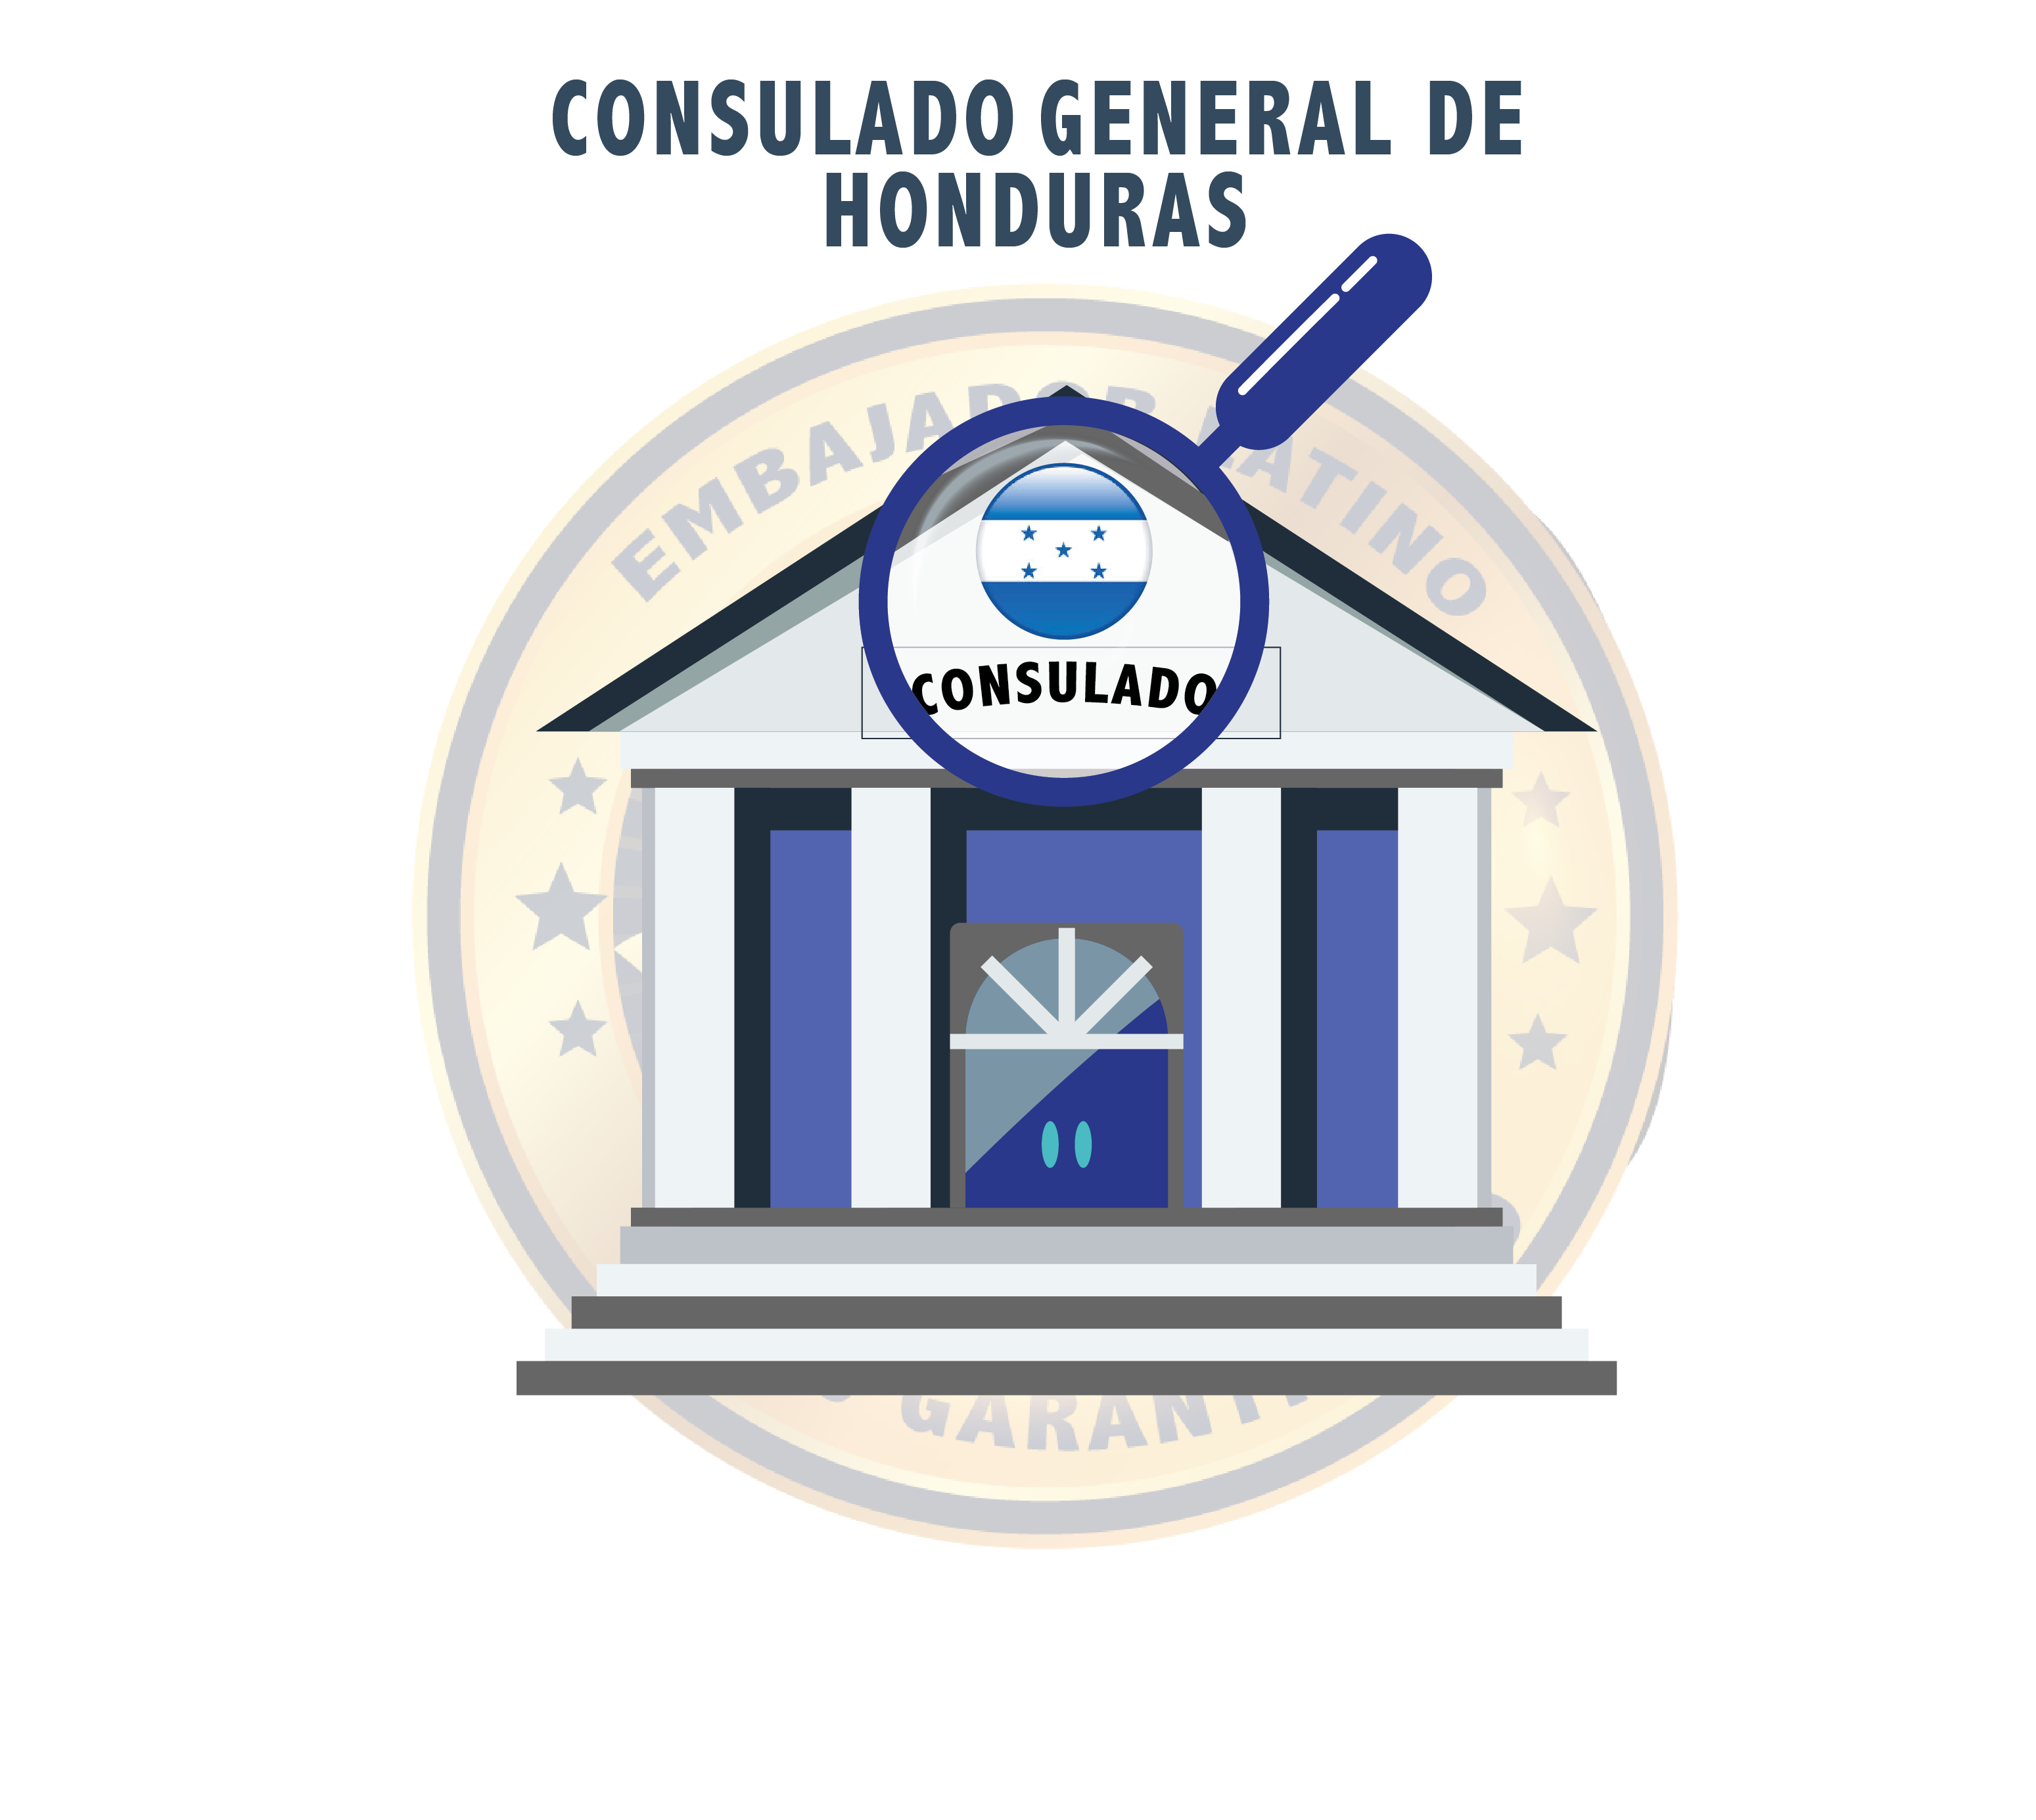 Consulate General of Honduras